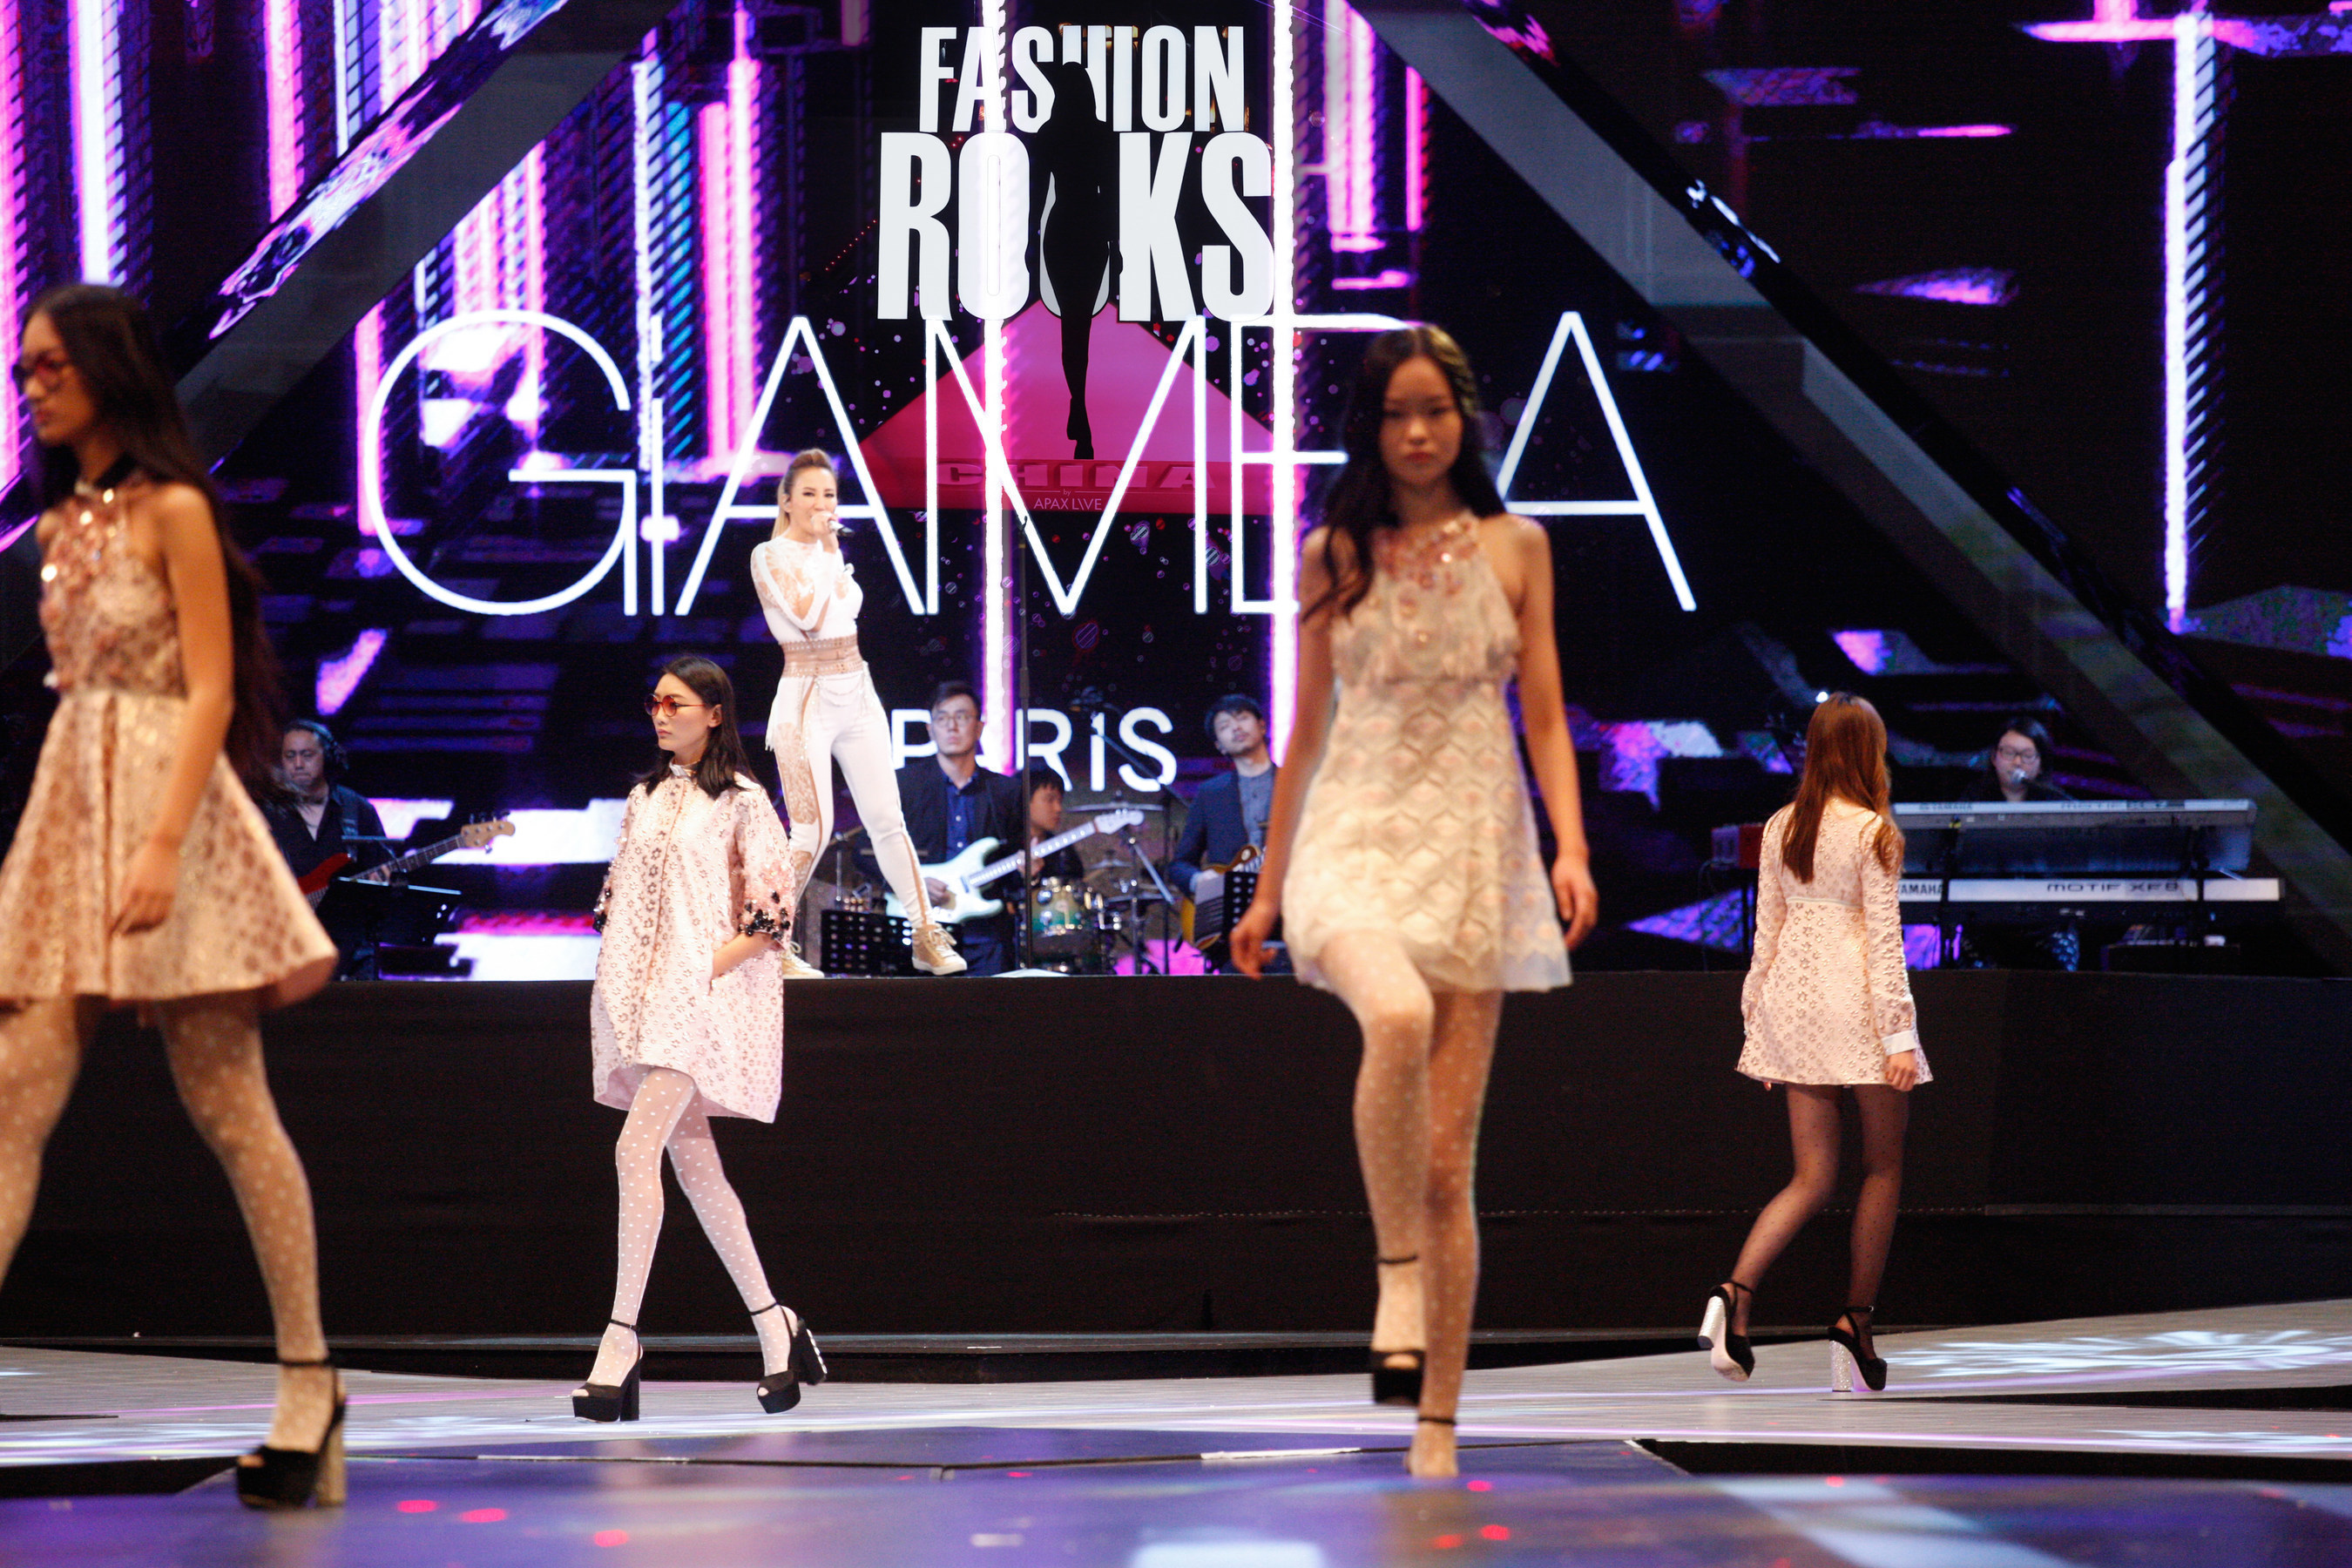 CoCo Lee x Giamba, Shanghai, 14th Oct 2016, First Fashion Rocks in Asia presented by APAX LIVE